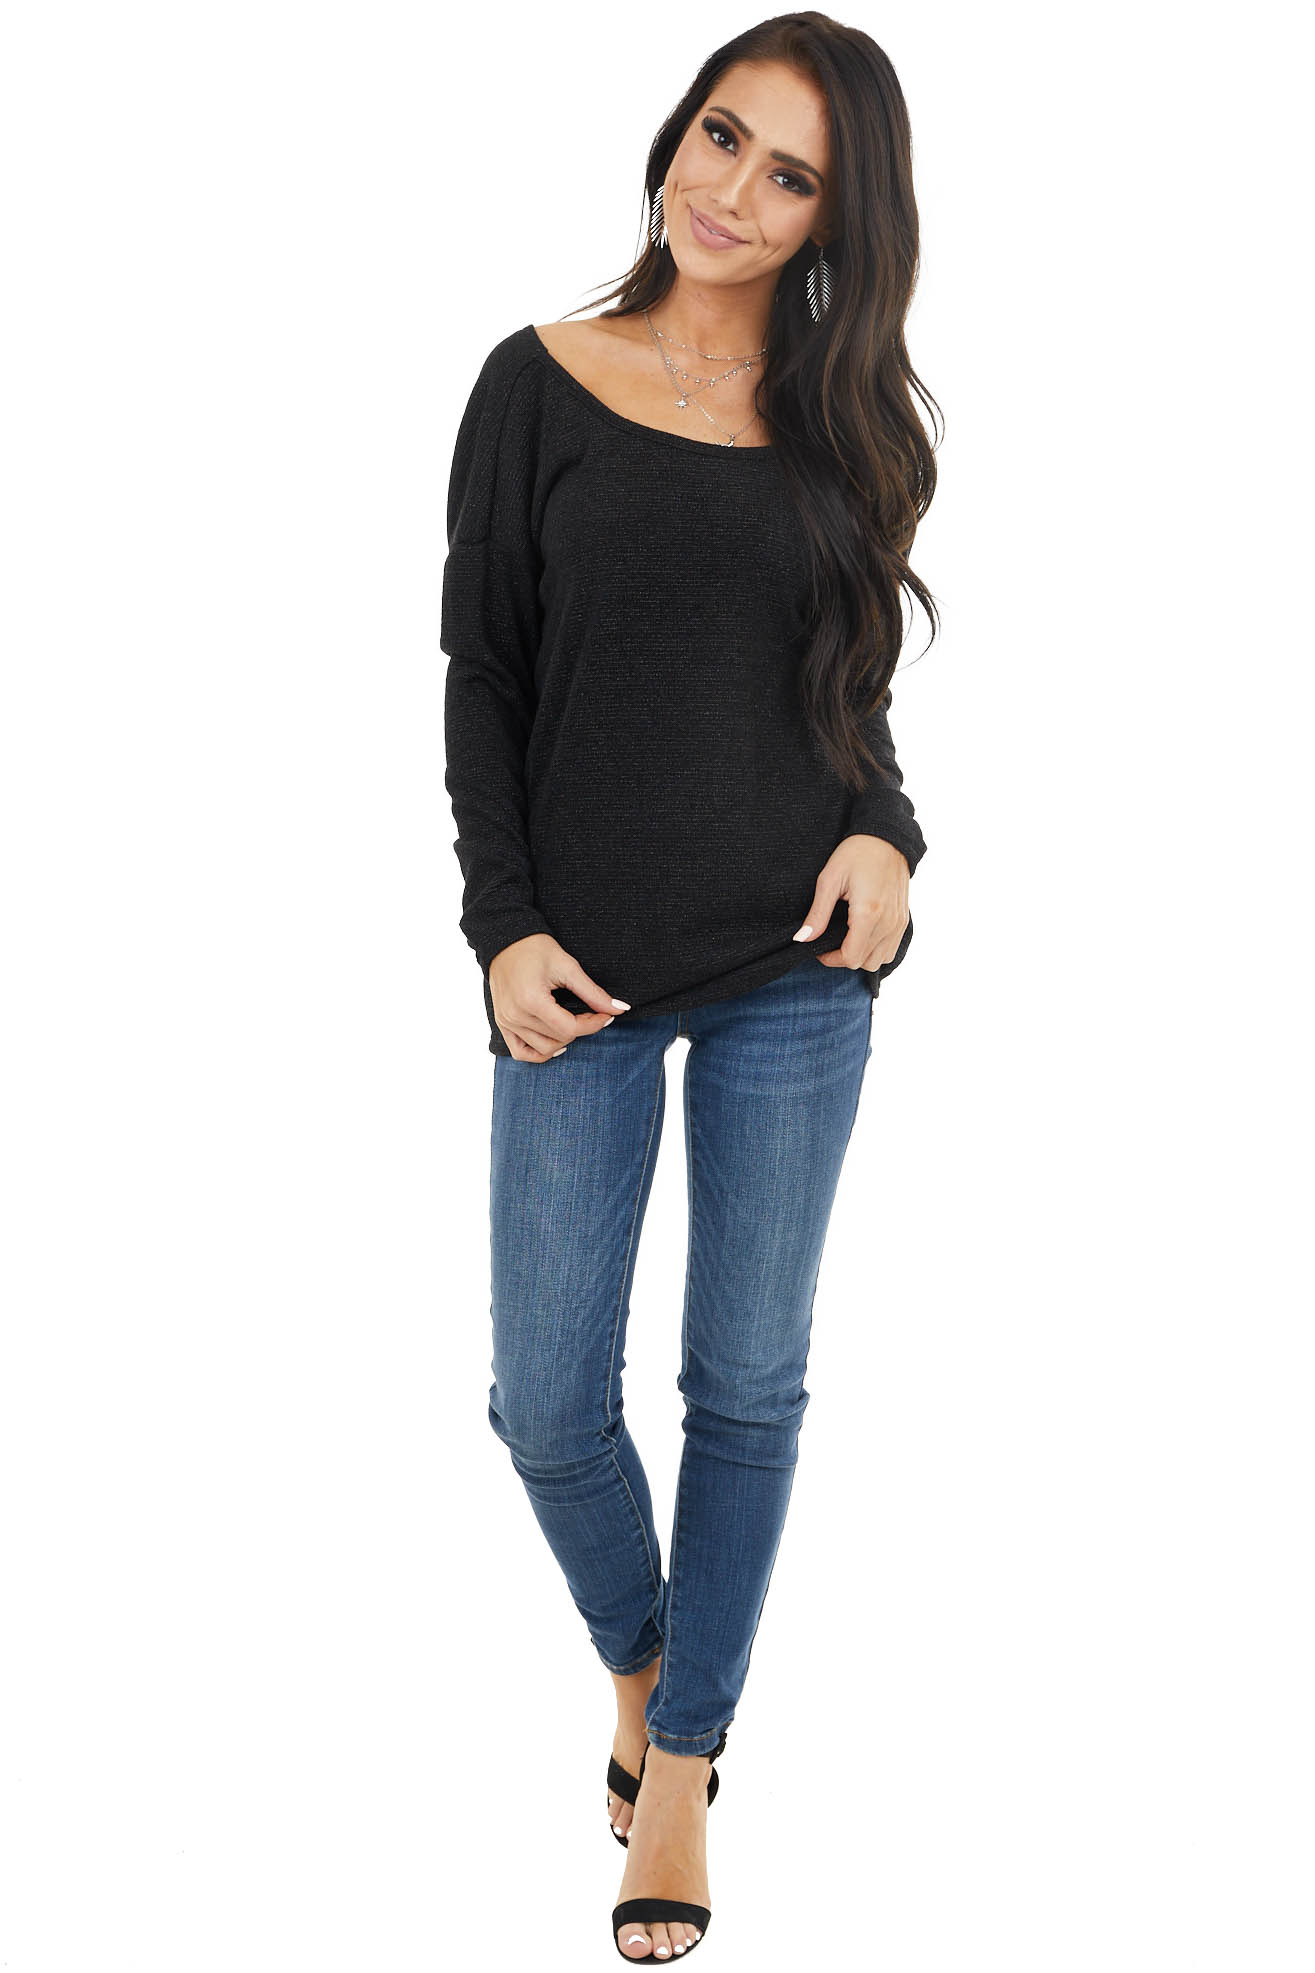 Black and Sparkle Thread Knit Top with Low Back Knot Detail